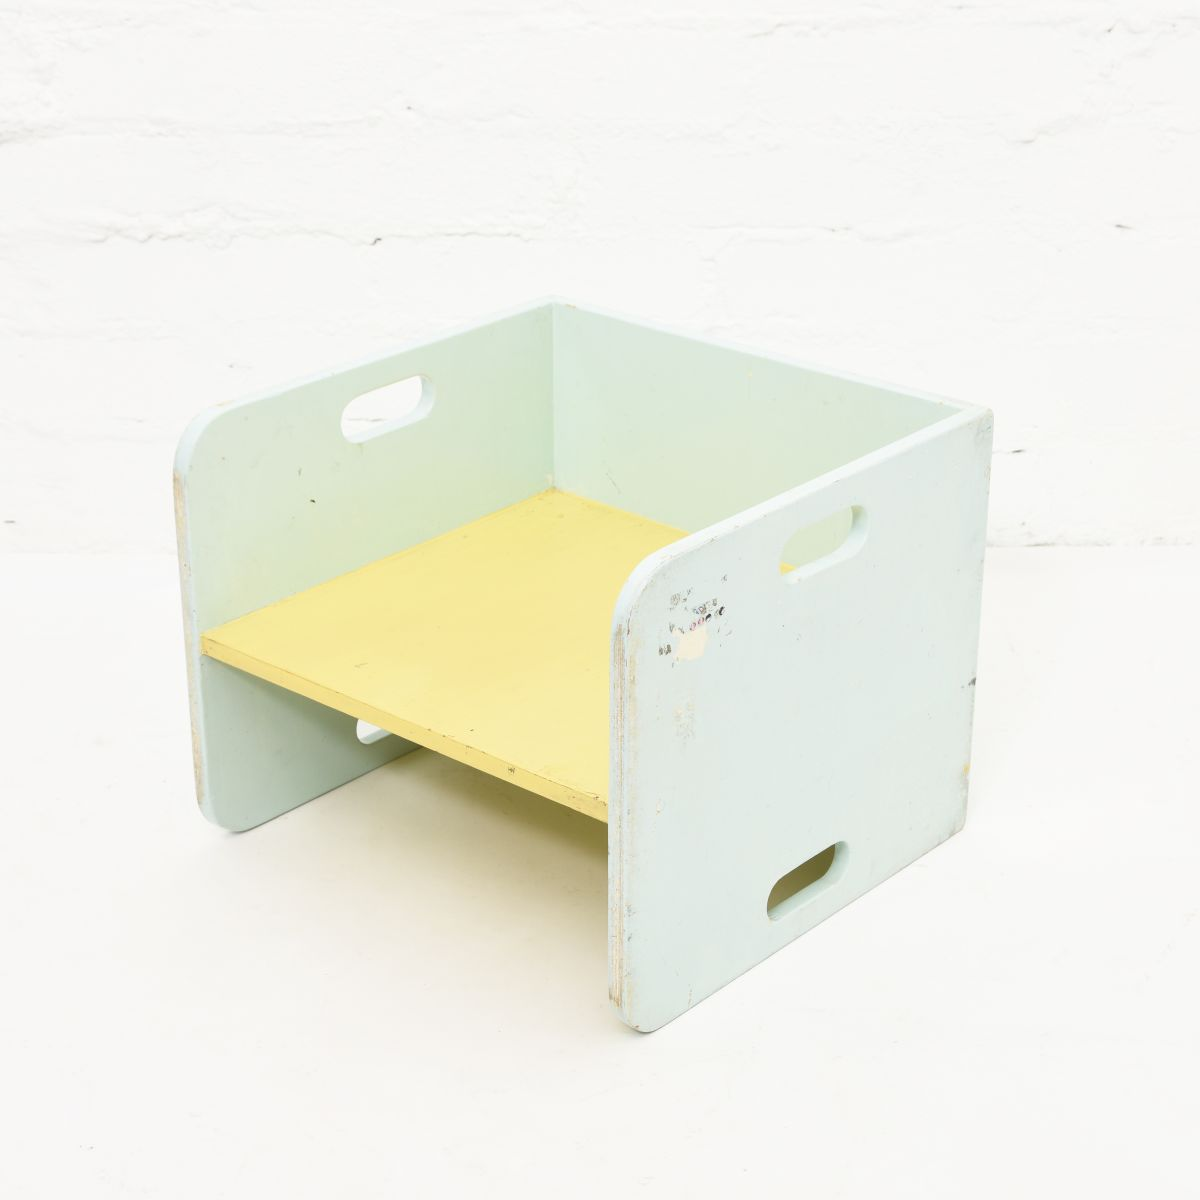 Anonymou-Turnable-Kids-Chair